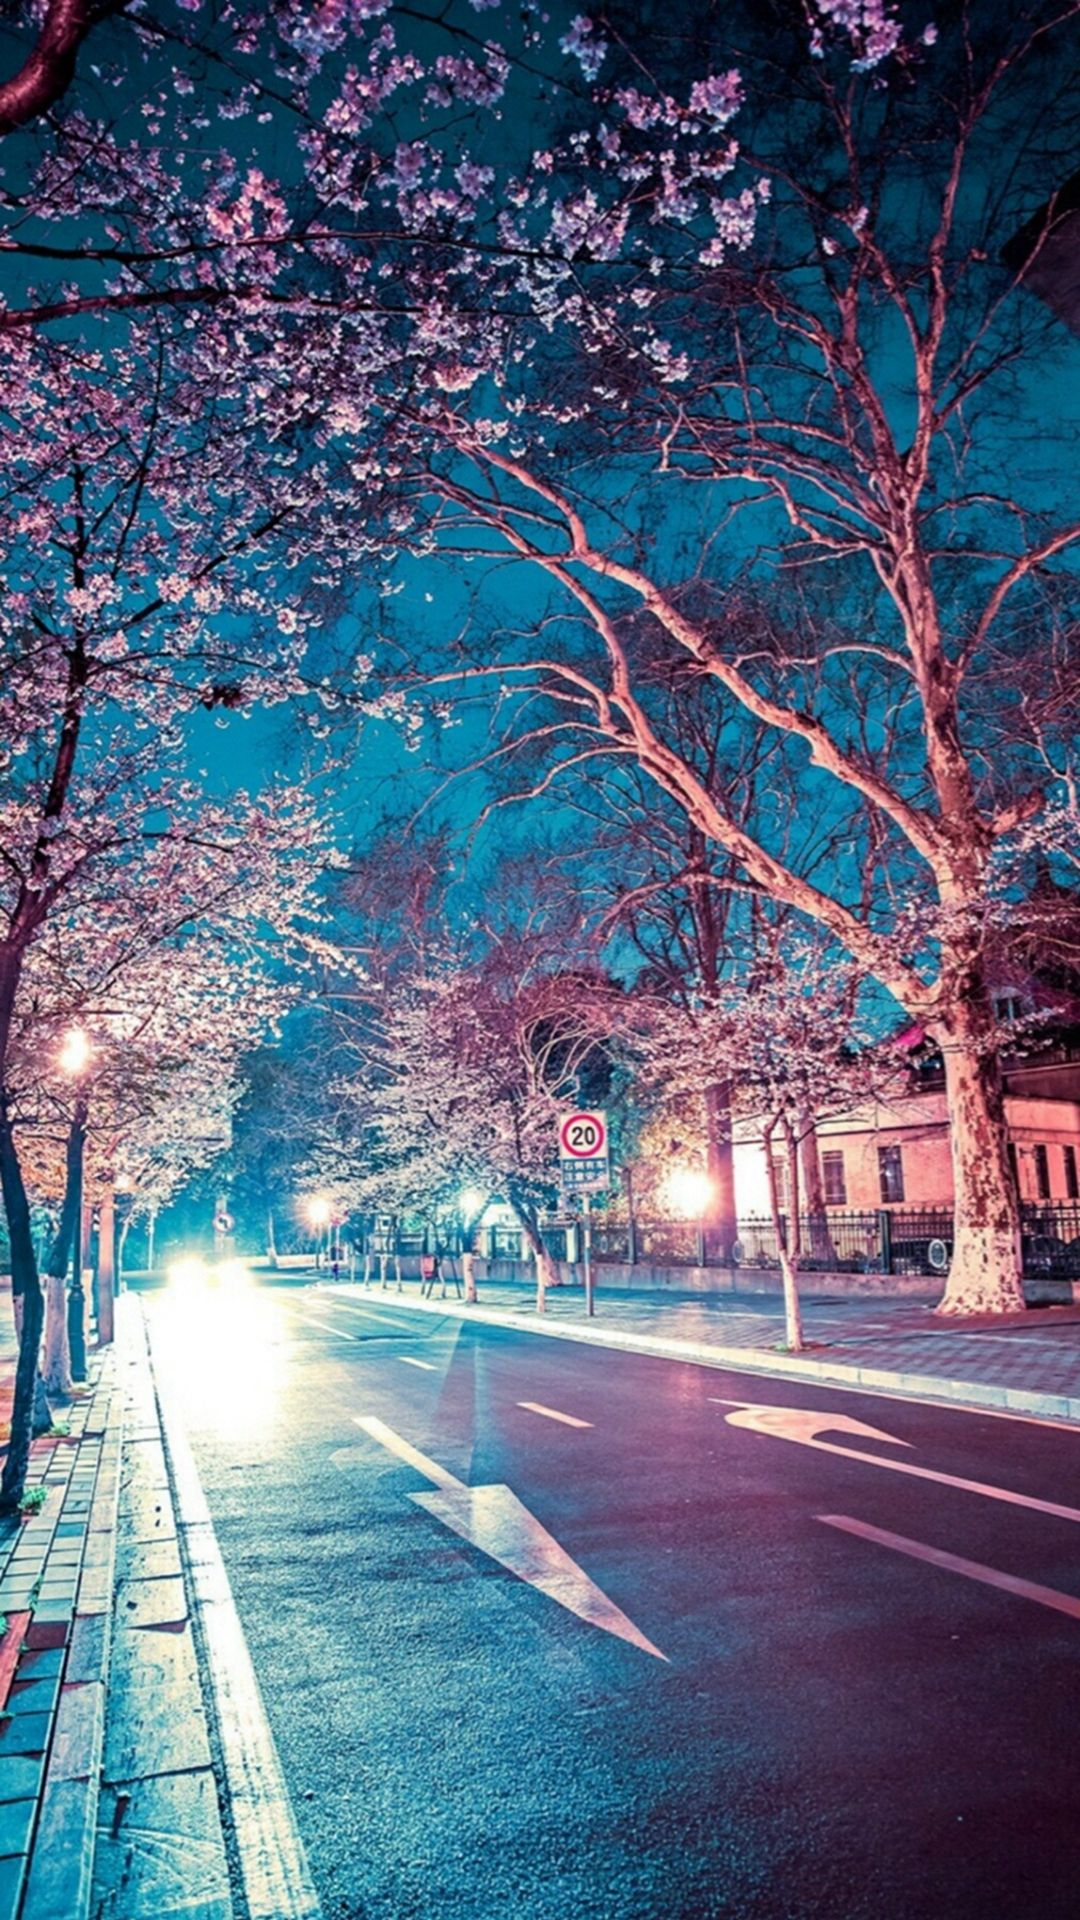 Japanese Street Cherry Blossom Night Scenery Iphone 6 Plus Wallpaper